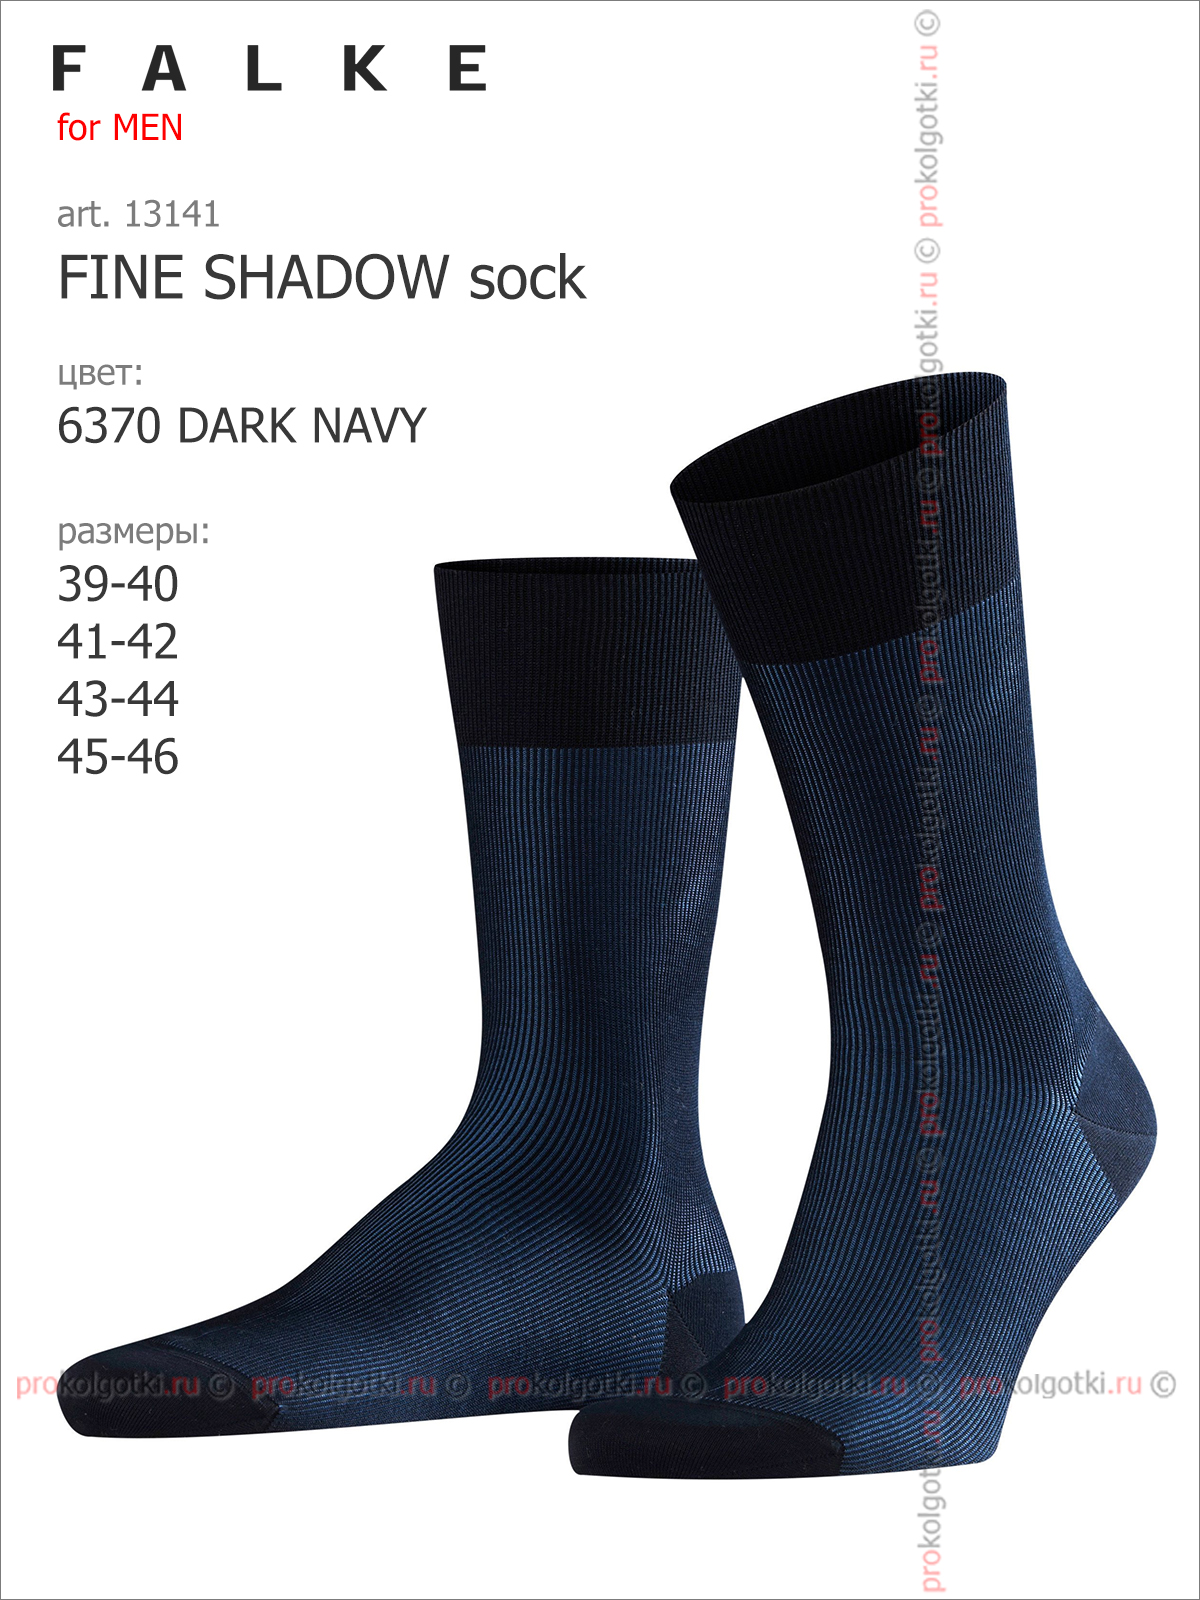 Носки Falke Art. 13141 Fine Shadow Sock - фото 3